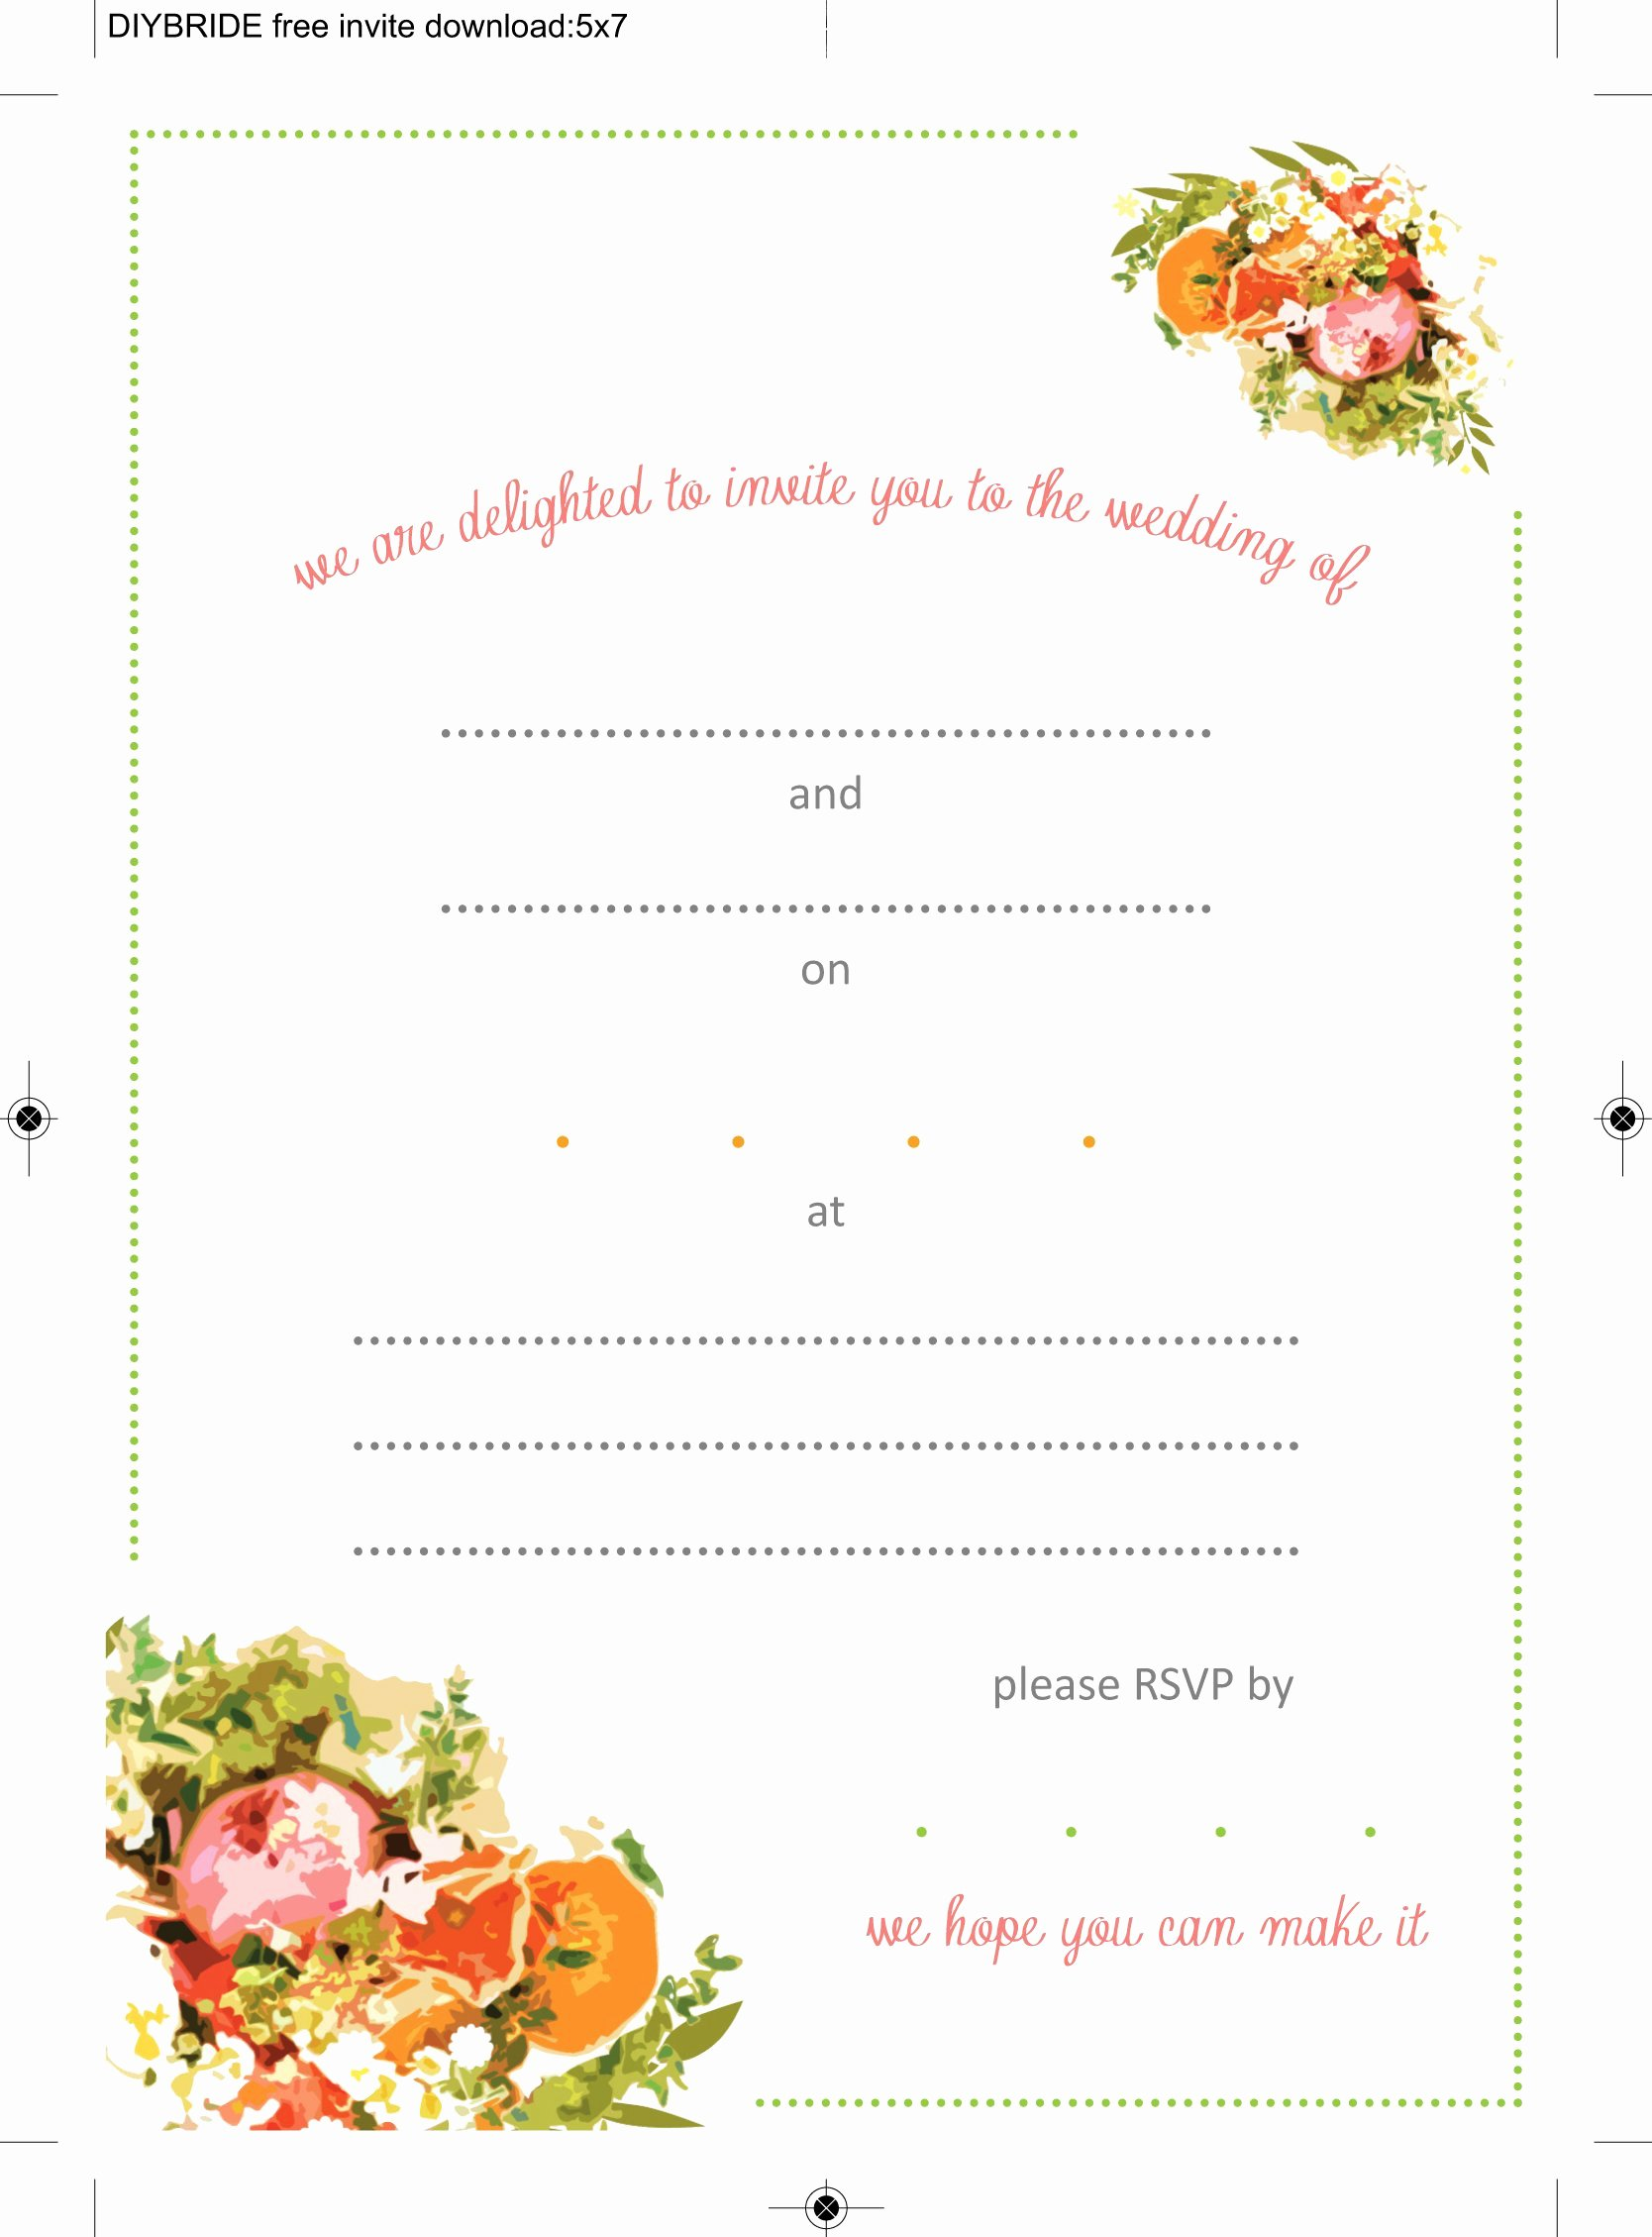 Microsoft Office Wedding Invitation Template Beautiful Wedding Invitation Templates that are Cute and Easy to